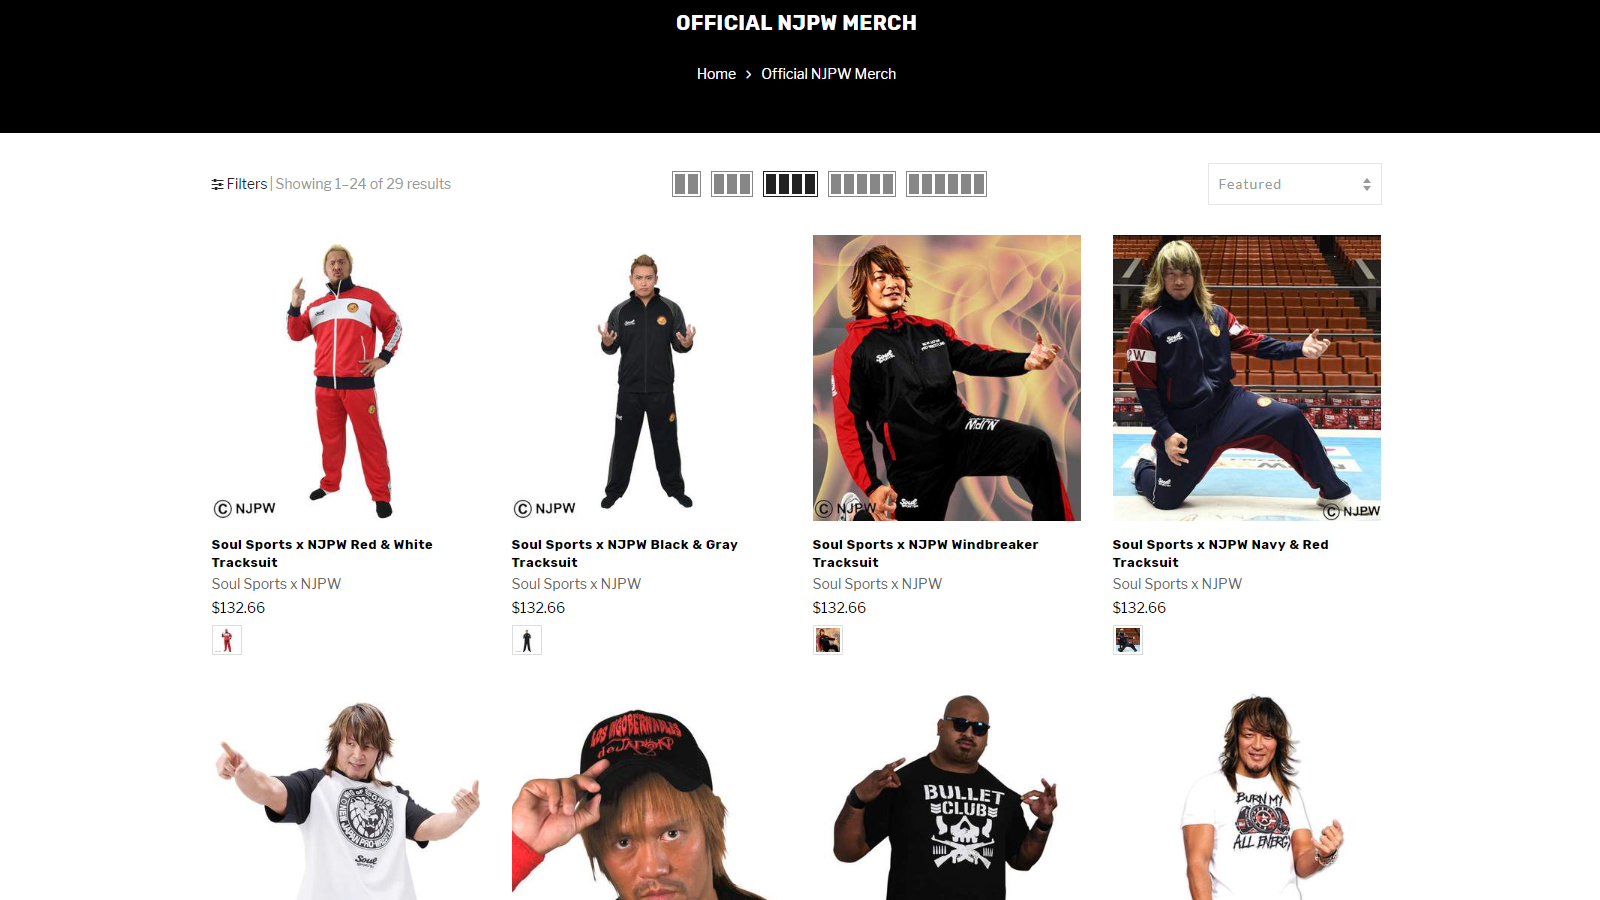 OFFICIAL NJPW MERCH